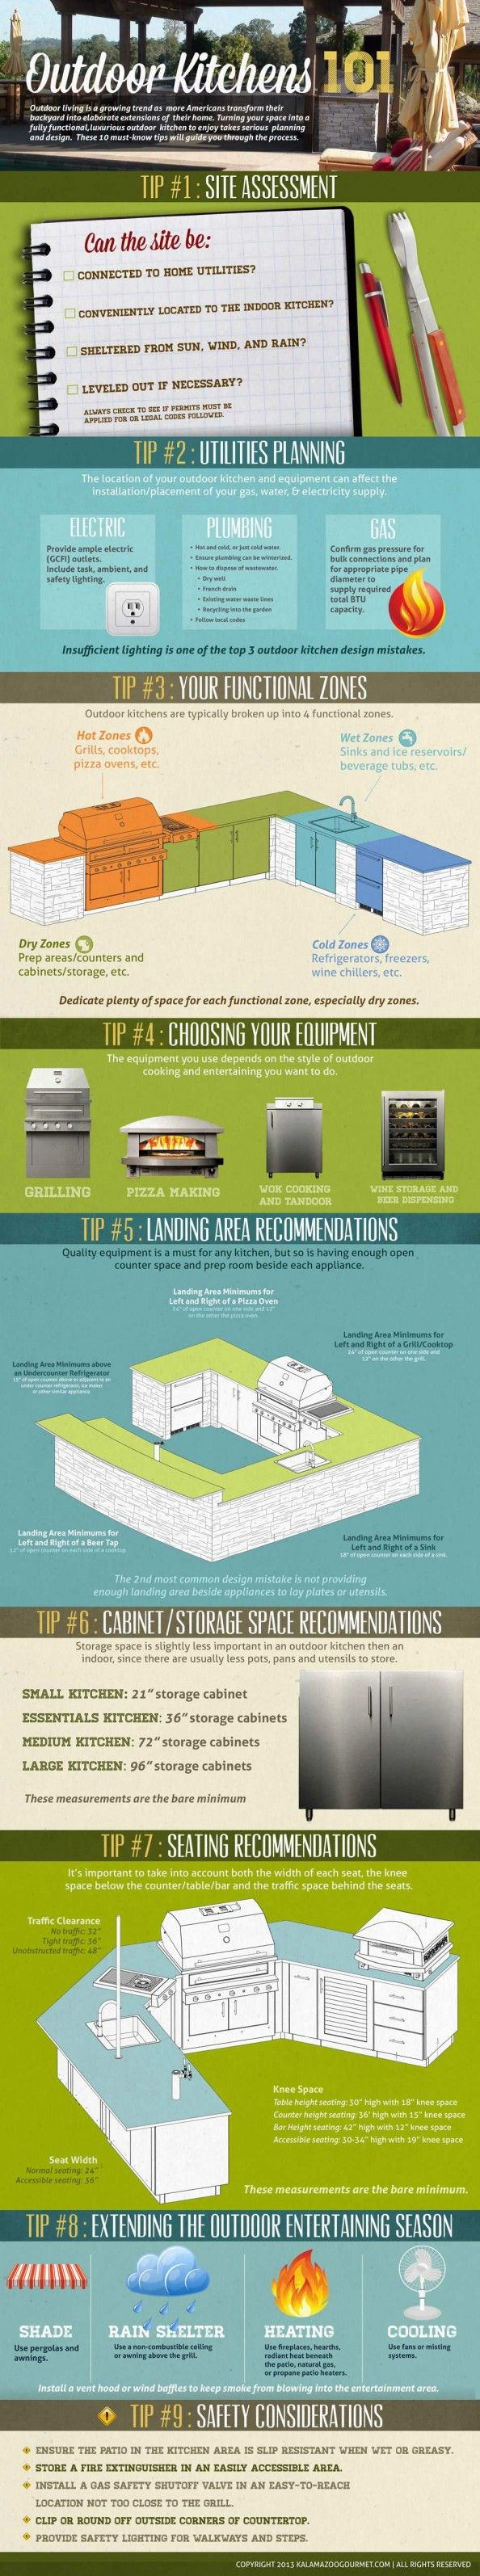 Outdoor Kitchens 101 Infographic: Visual interest added by varying elements & backgrounds (i.e. notepad) to display info